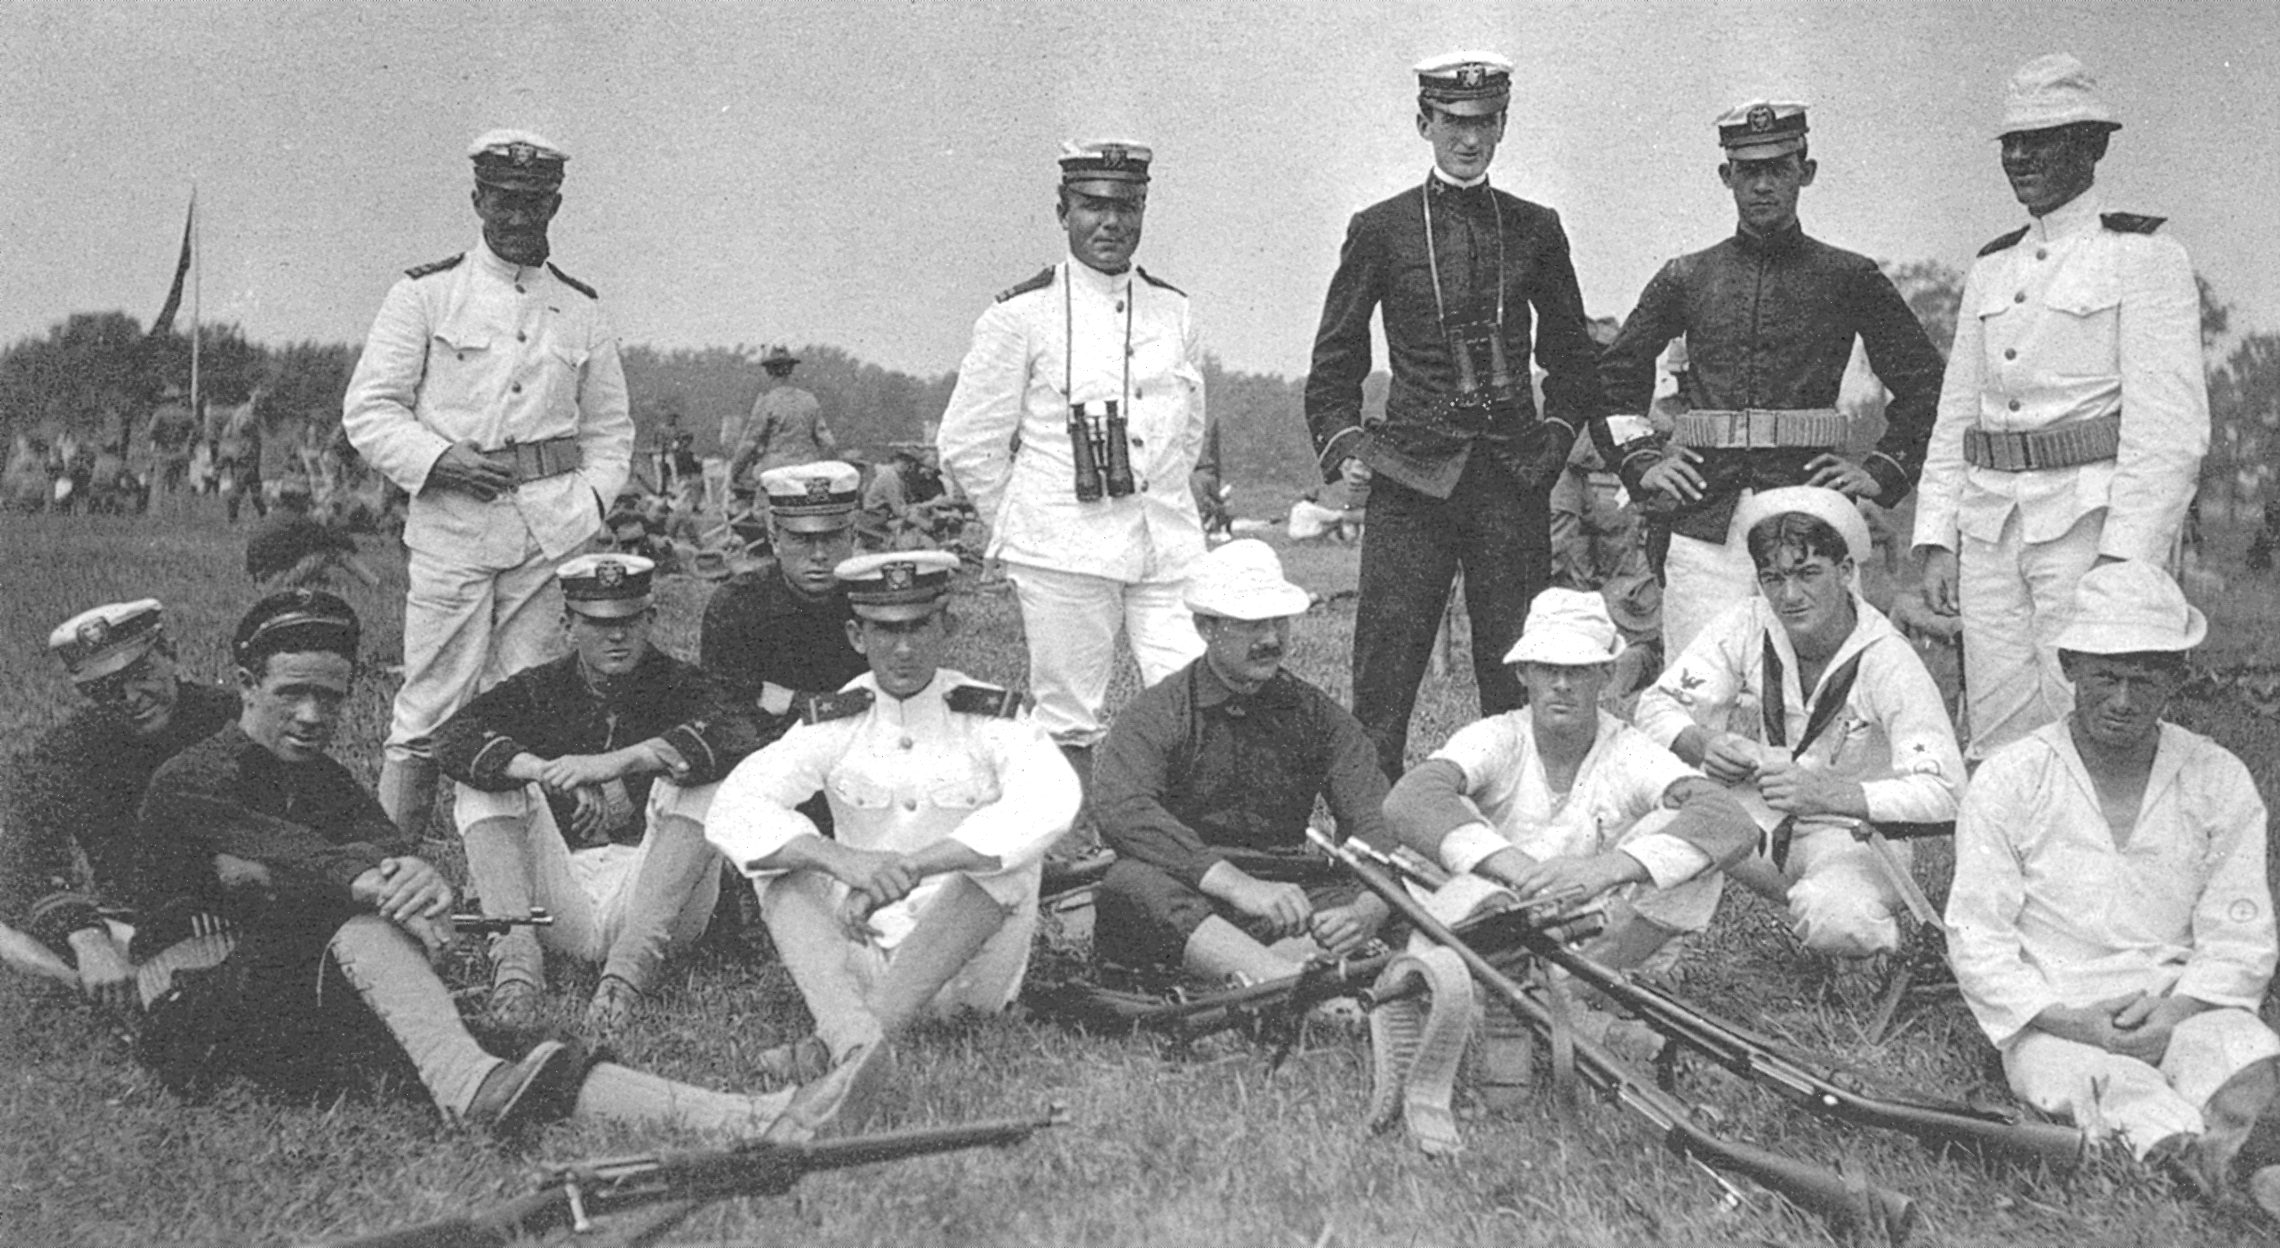 File:1907 Navy Rifle Team.png